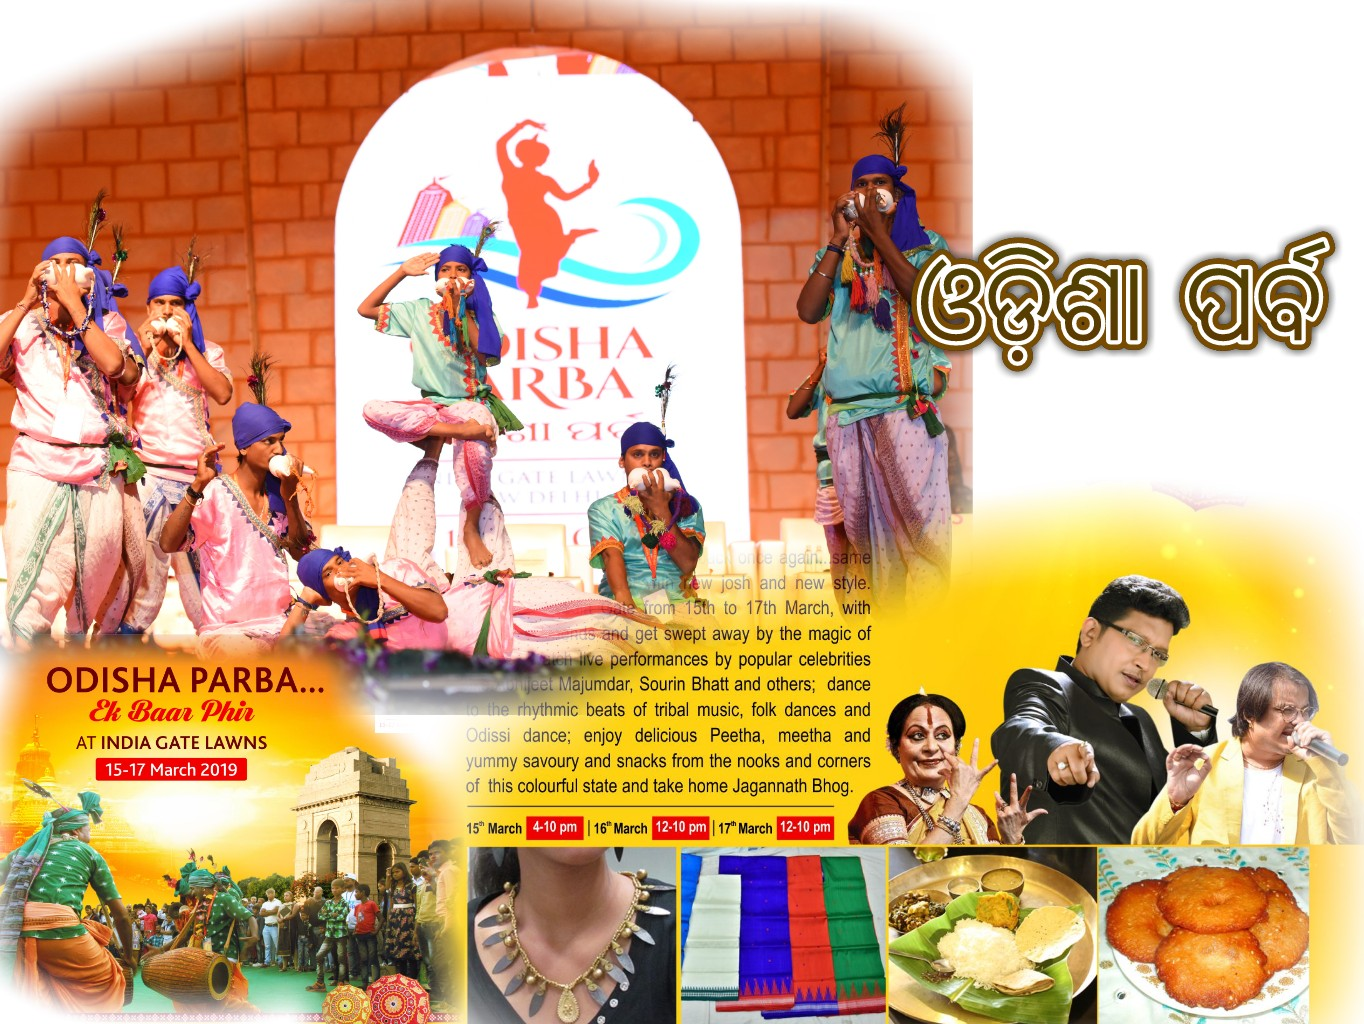 Three day long Odisha Parba- 2019 to kick start from March 15 at India Gate Lawns in New Delhi